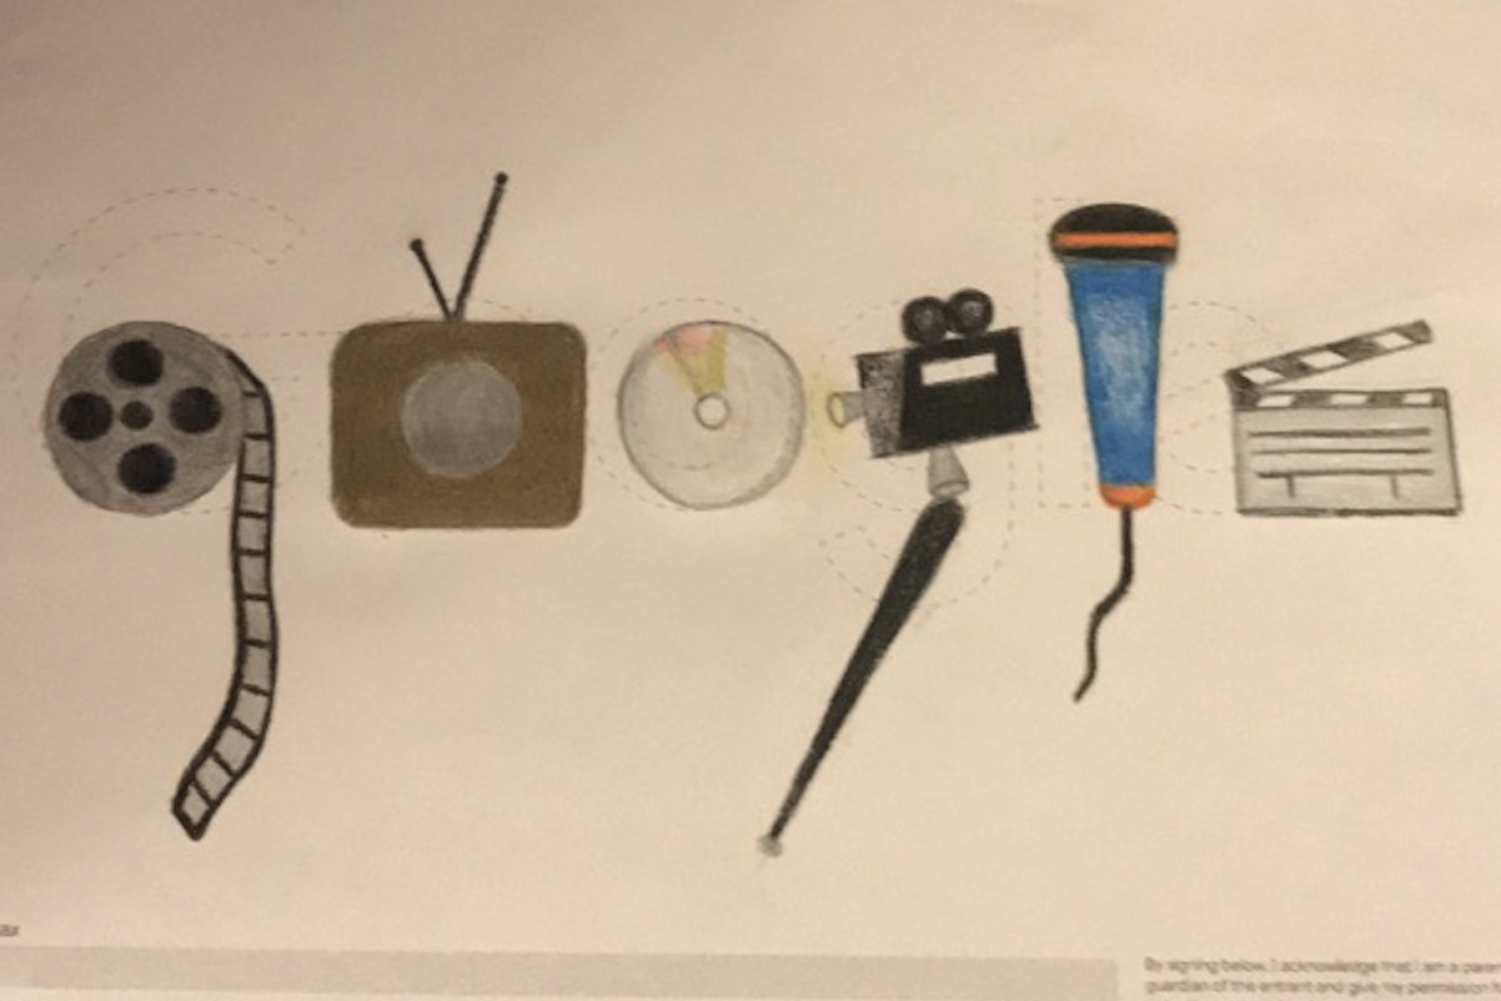 Art 1 students tasked with creating a doodle for Google. For WTV Executive Producer Neha Perumalla, broadcast journalism provided her inspiration.